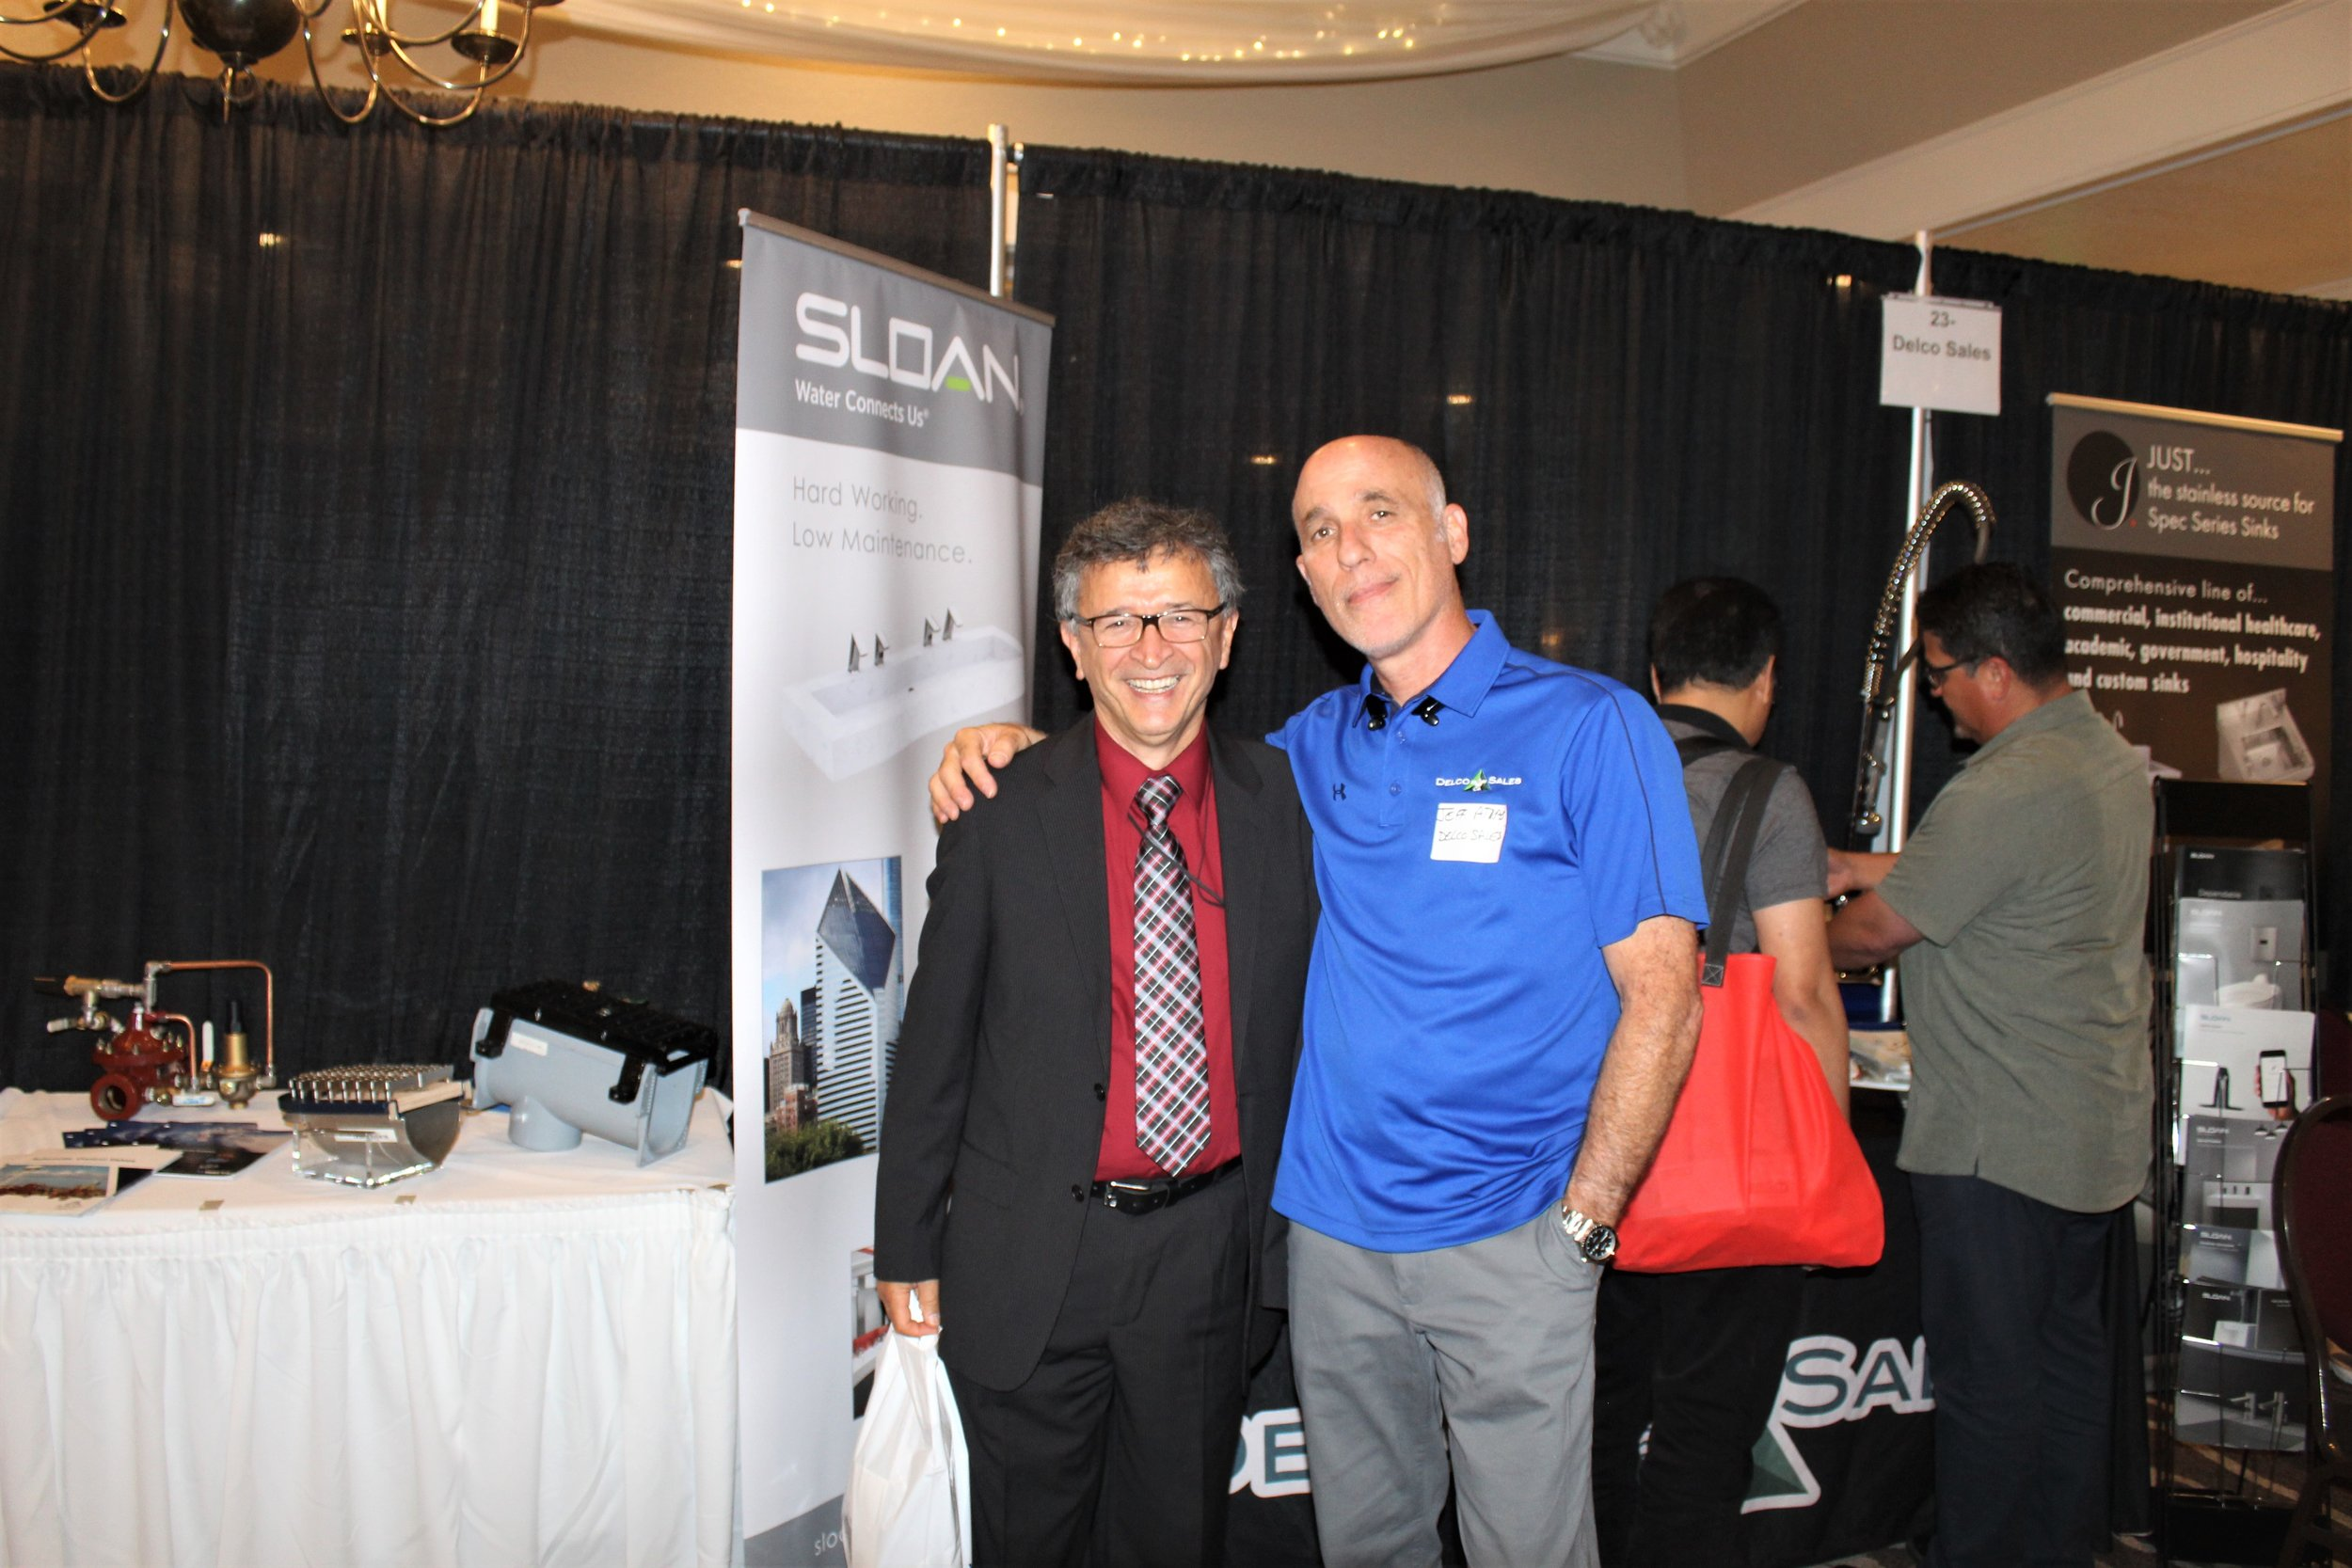 Delco Sales Specification Team Member Jeff Atlas takes a pic with longtime friend Dr. Saum K. Nour